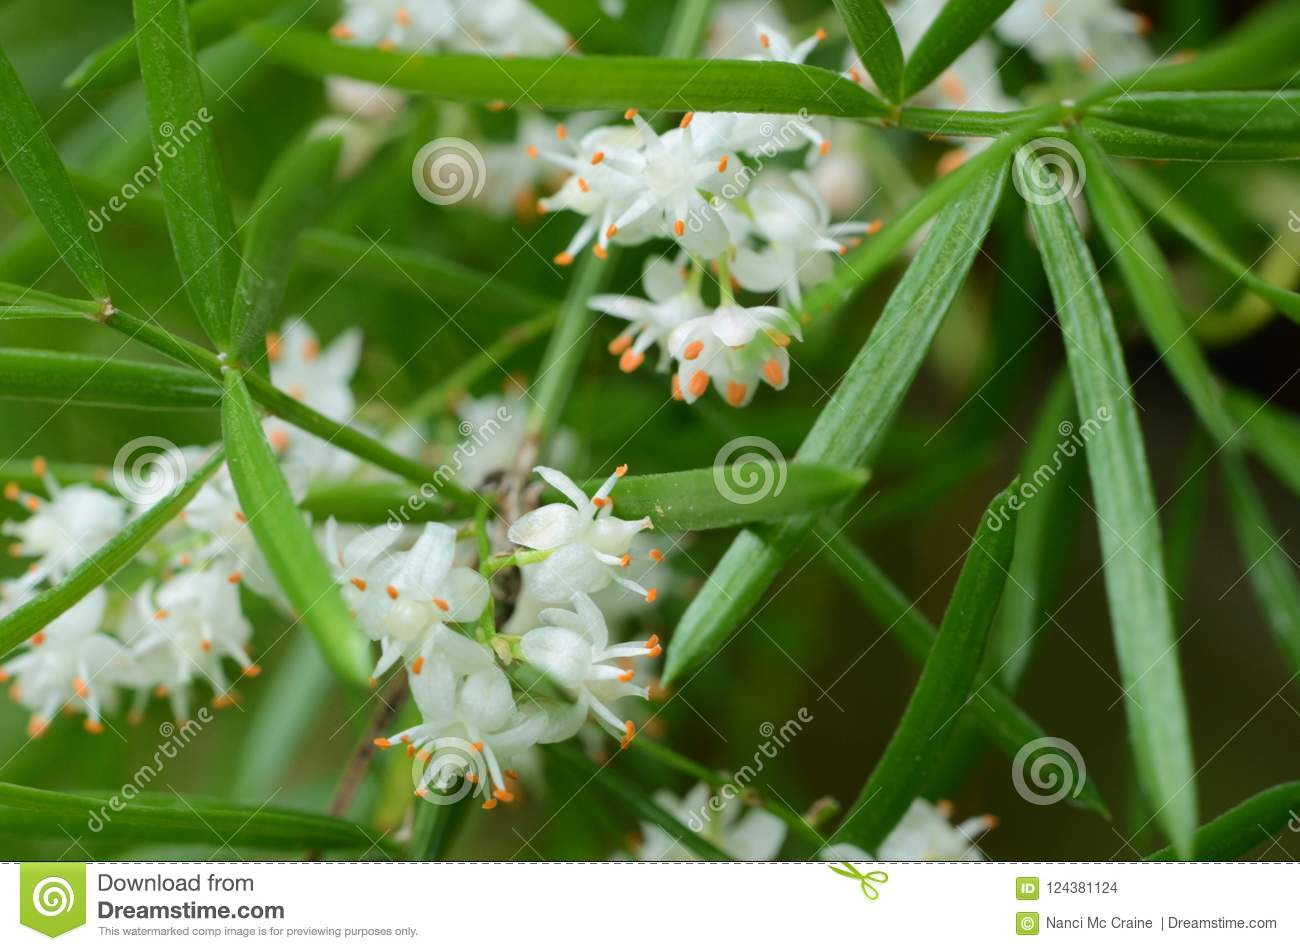 Asparagus Fern Leaves And Tiny White Flowers Stock Photo Image Of